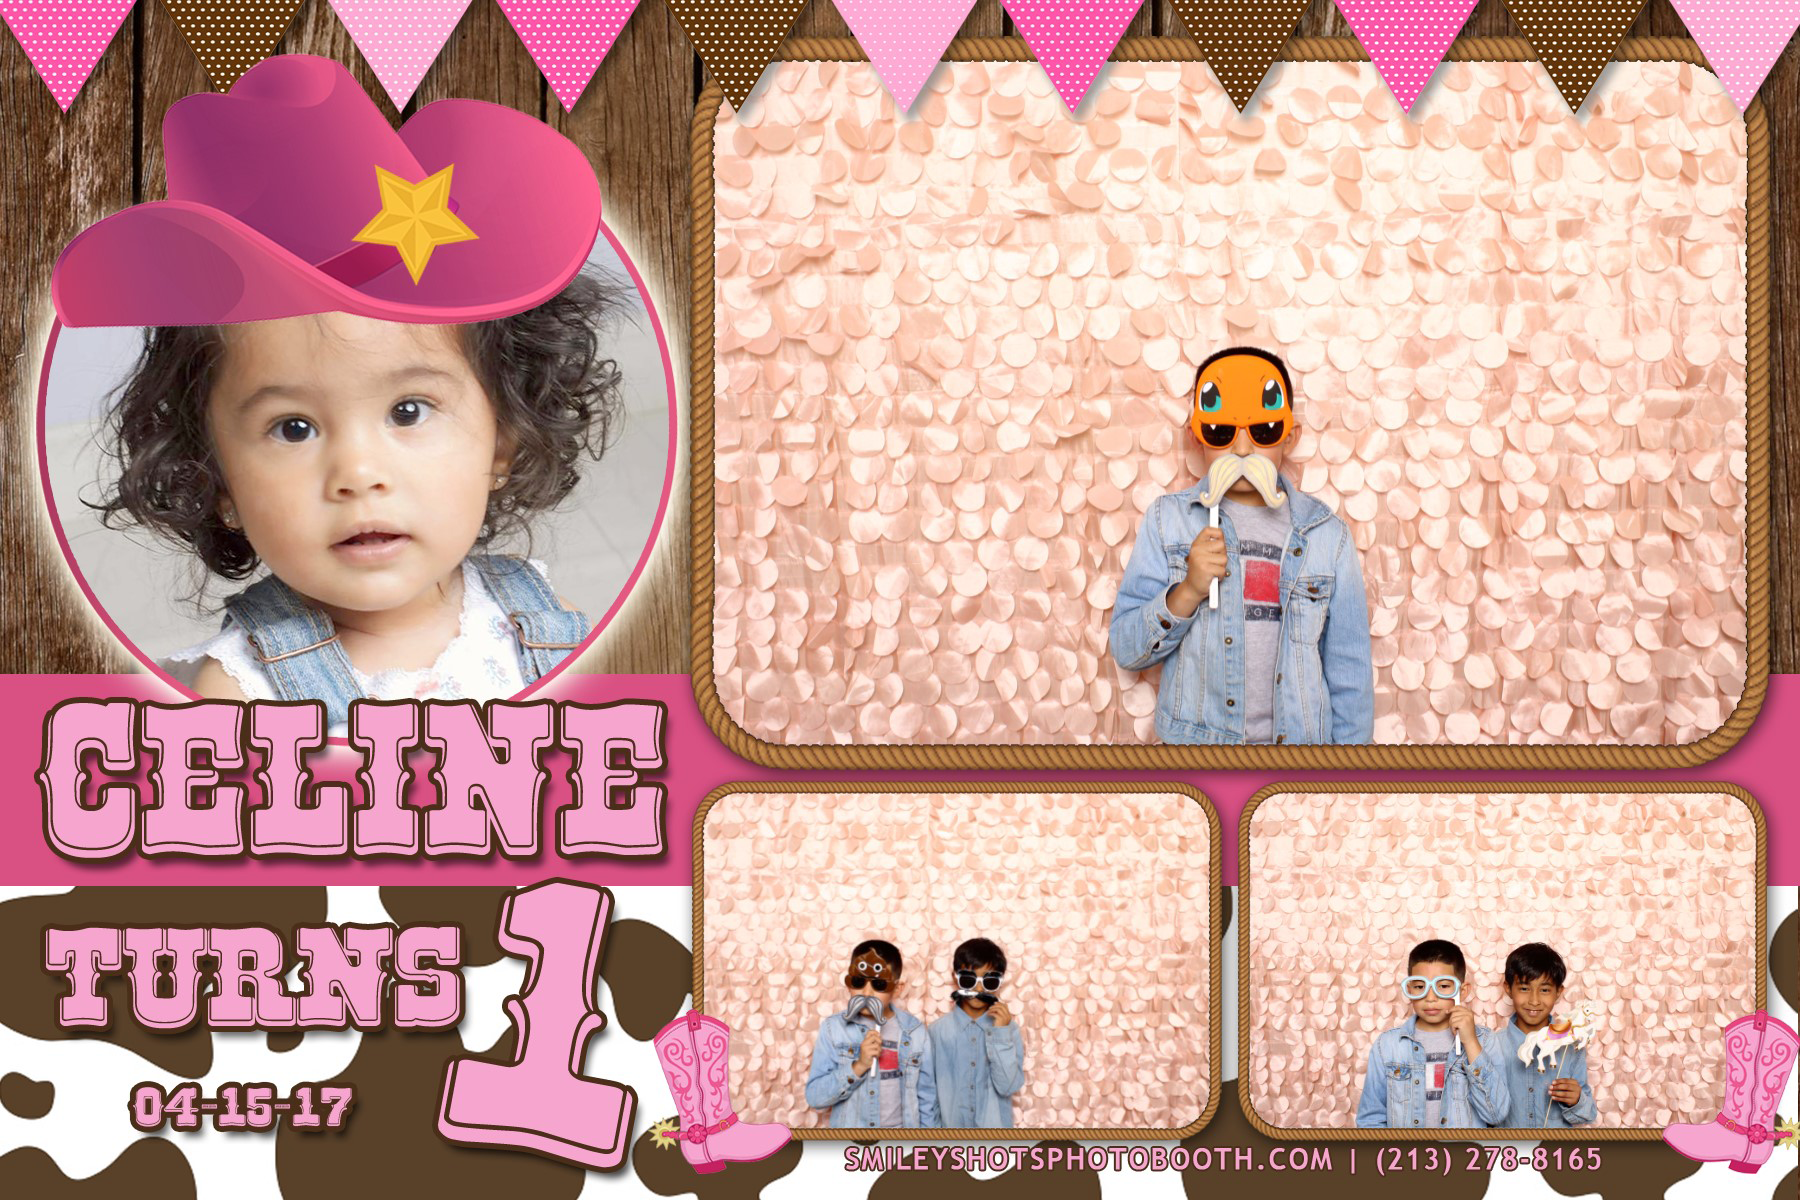 Celine turns 1 Smiley Shots Photo Booth Photobooth (29).png